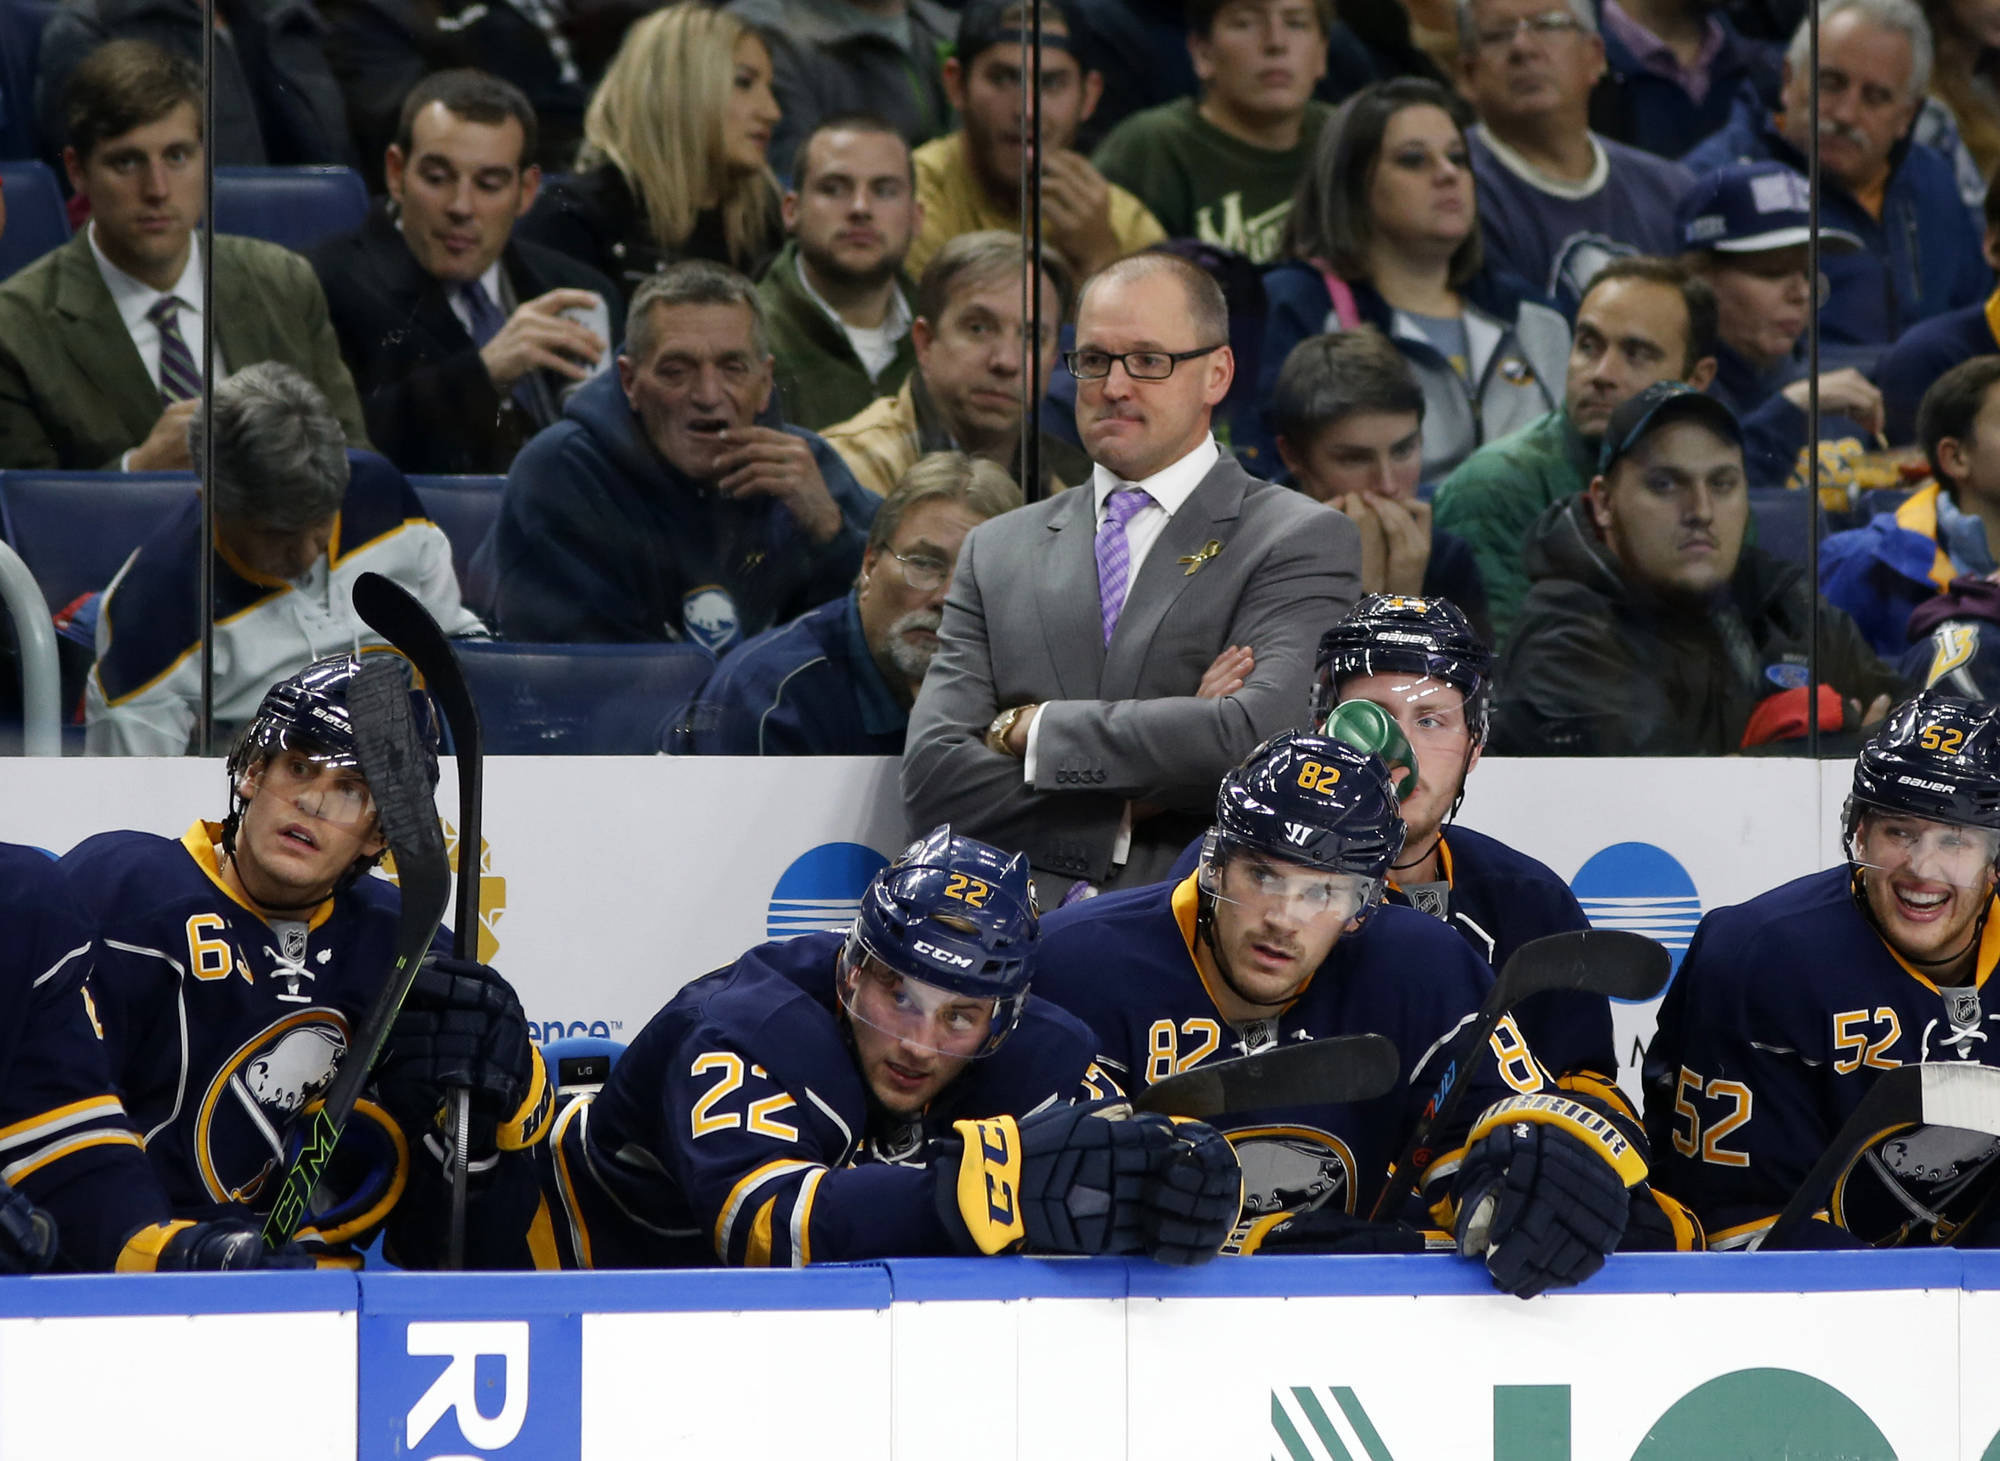 The Buffalo Sabres are right on track... Relax